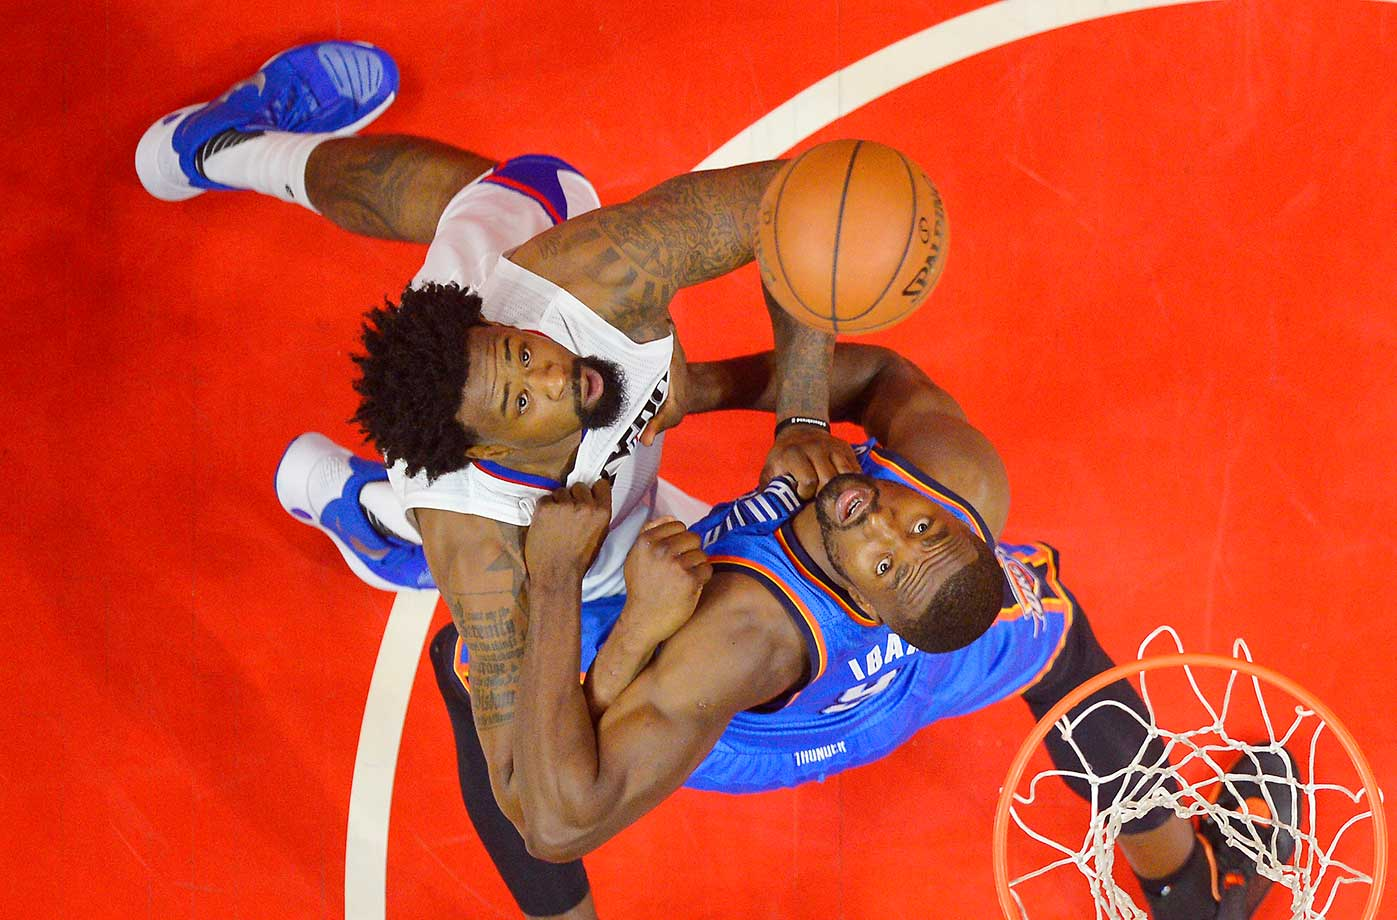 Clippers center DeAndre Jordan and Thunder forward Serge Ibaka watch a rebound during their game in L.A.